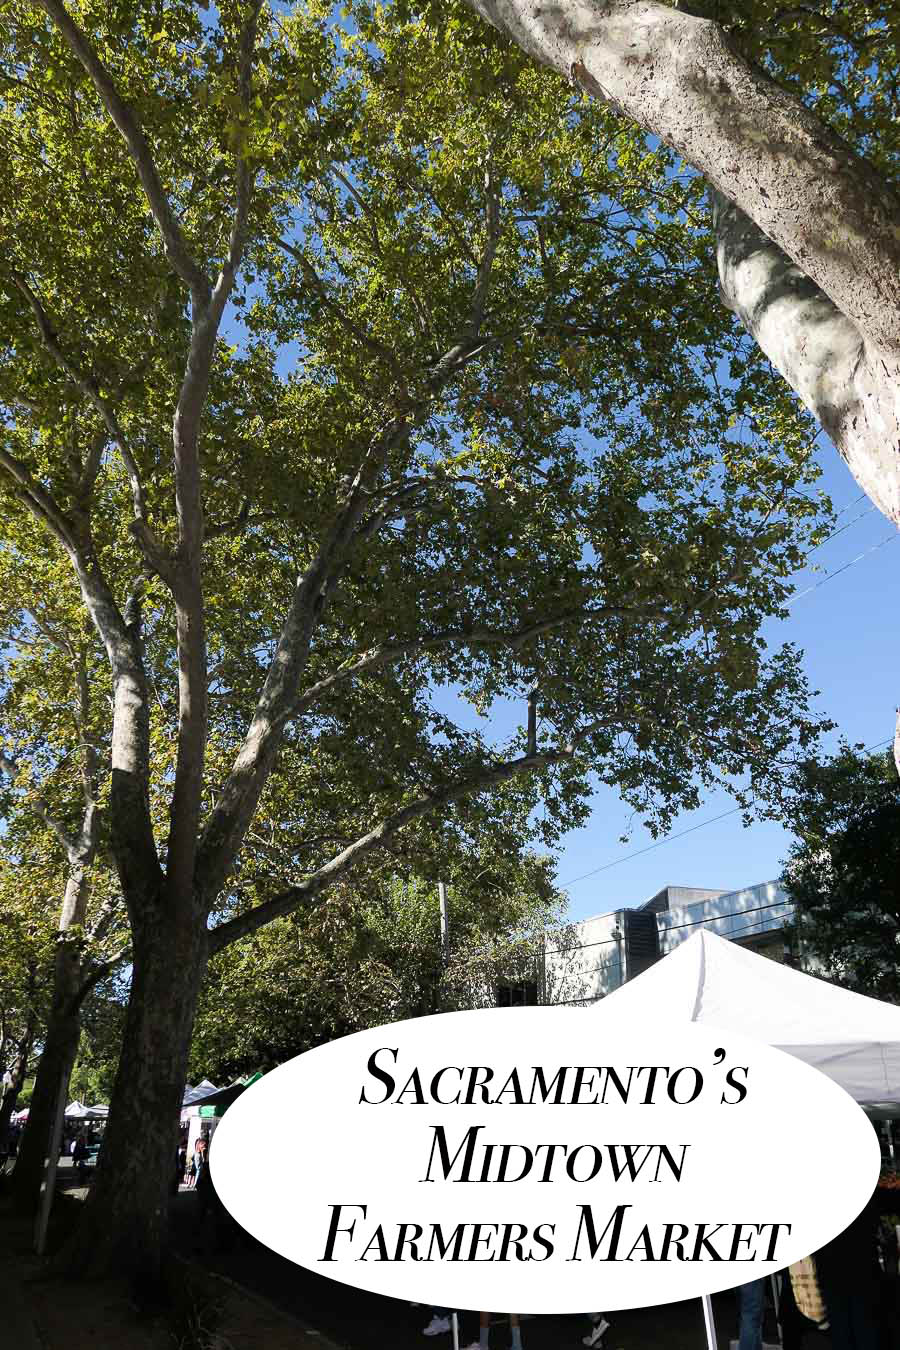 Visit Sacramento's Midtown Farmers Market where you can try an array of fresh California produce that's organic, seasonal, and local!!